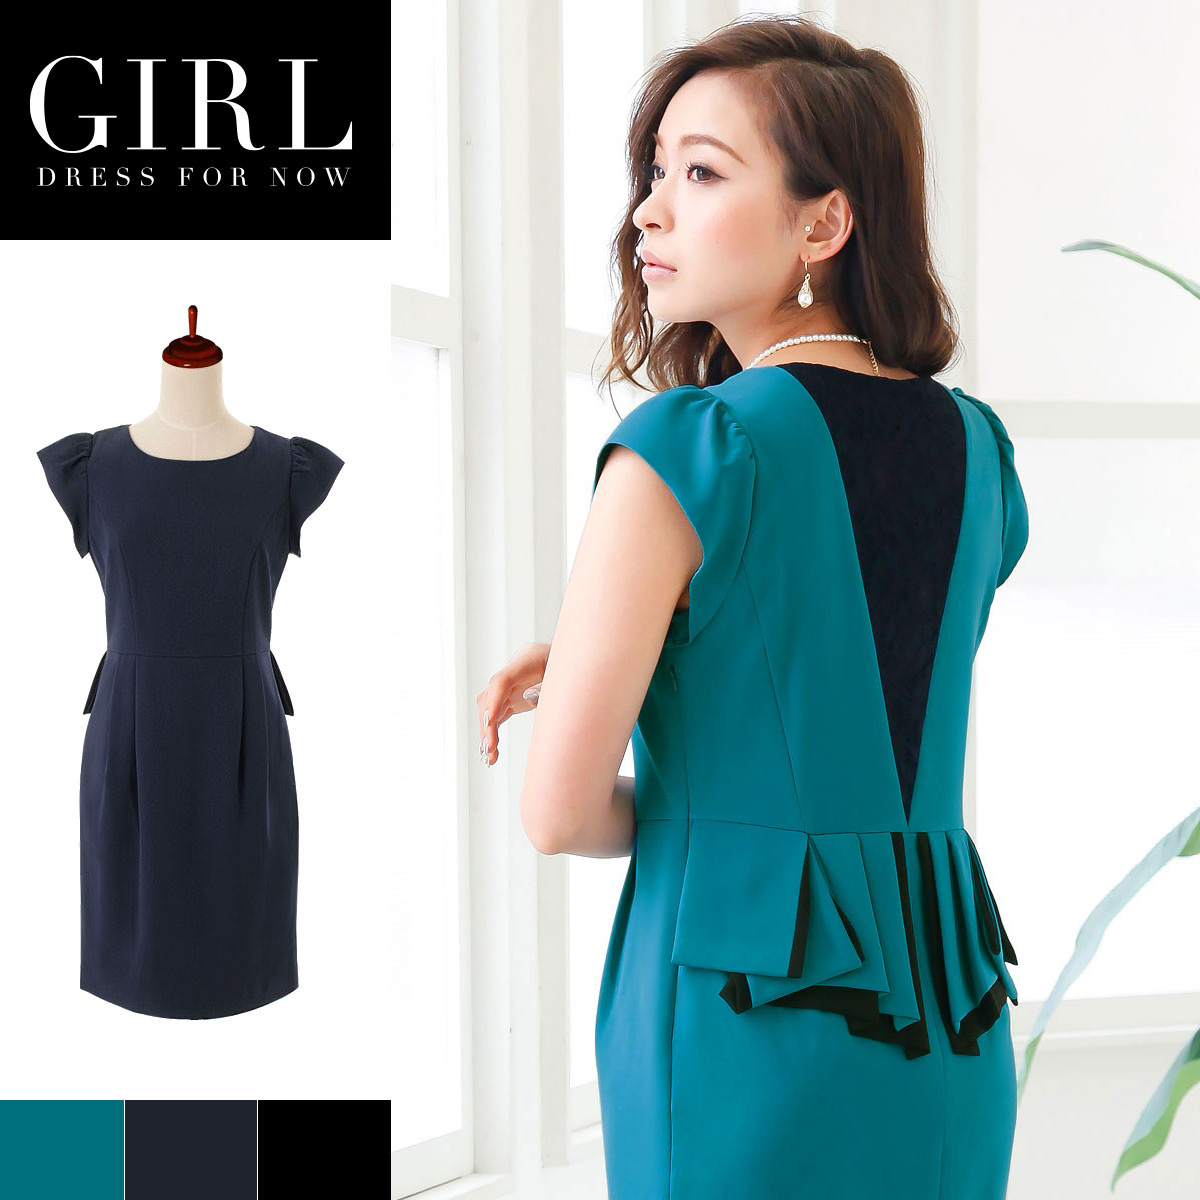 Dress shop GIRL | Rakuten Global Market: Party dress one-piece ...